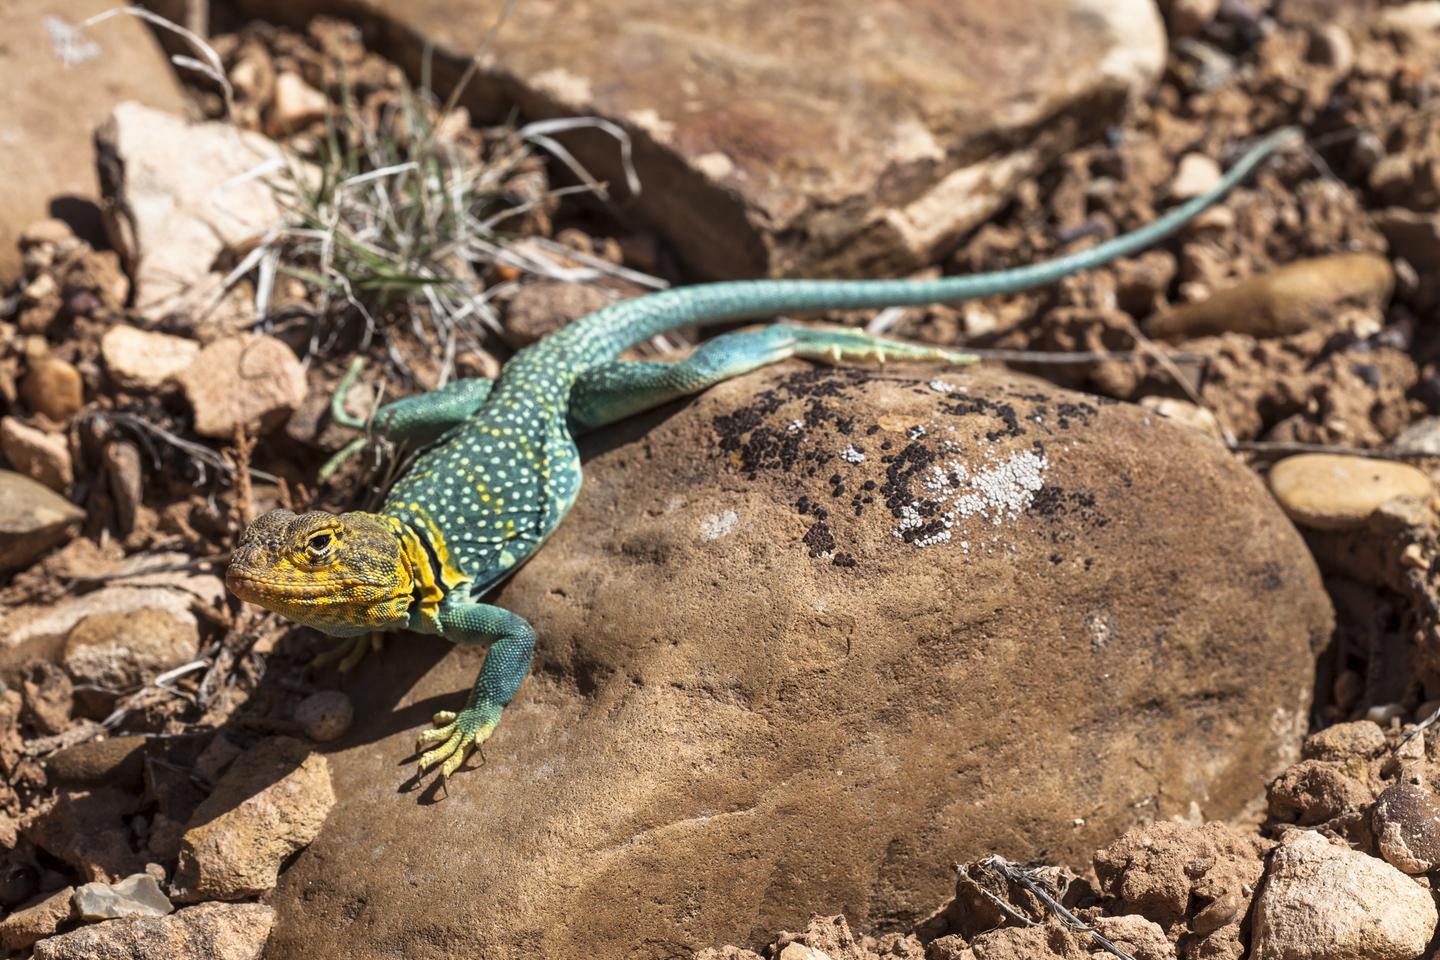 Collared LizardCollard lizards are one of many species that call Hovenweep home.